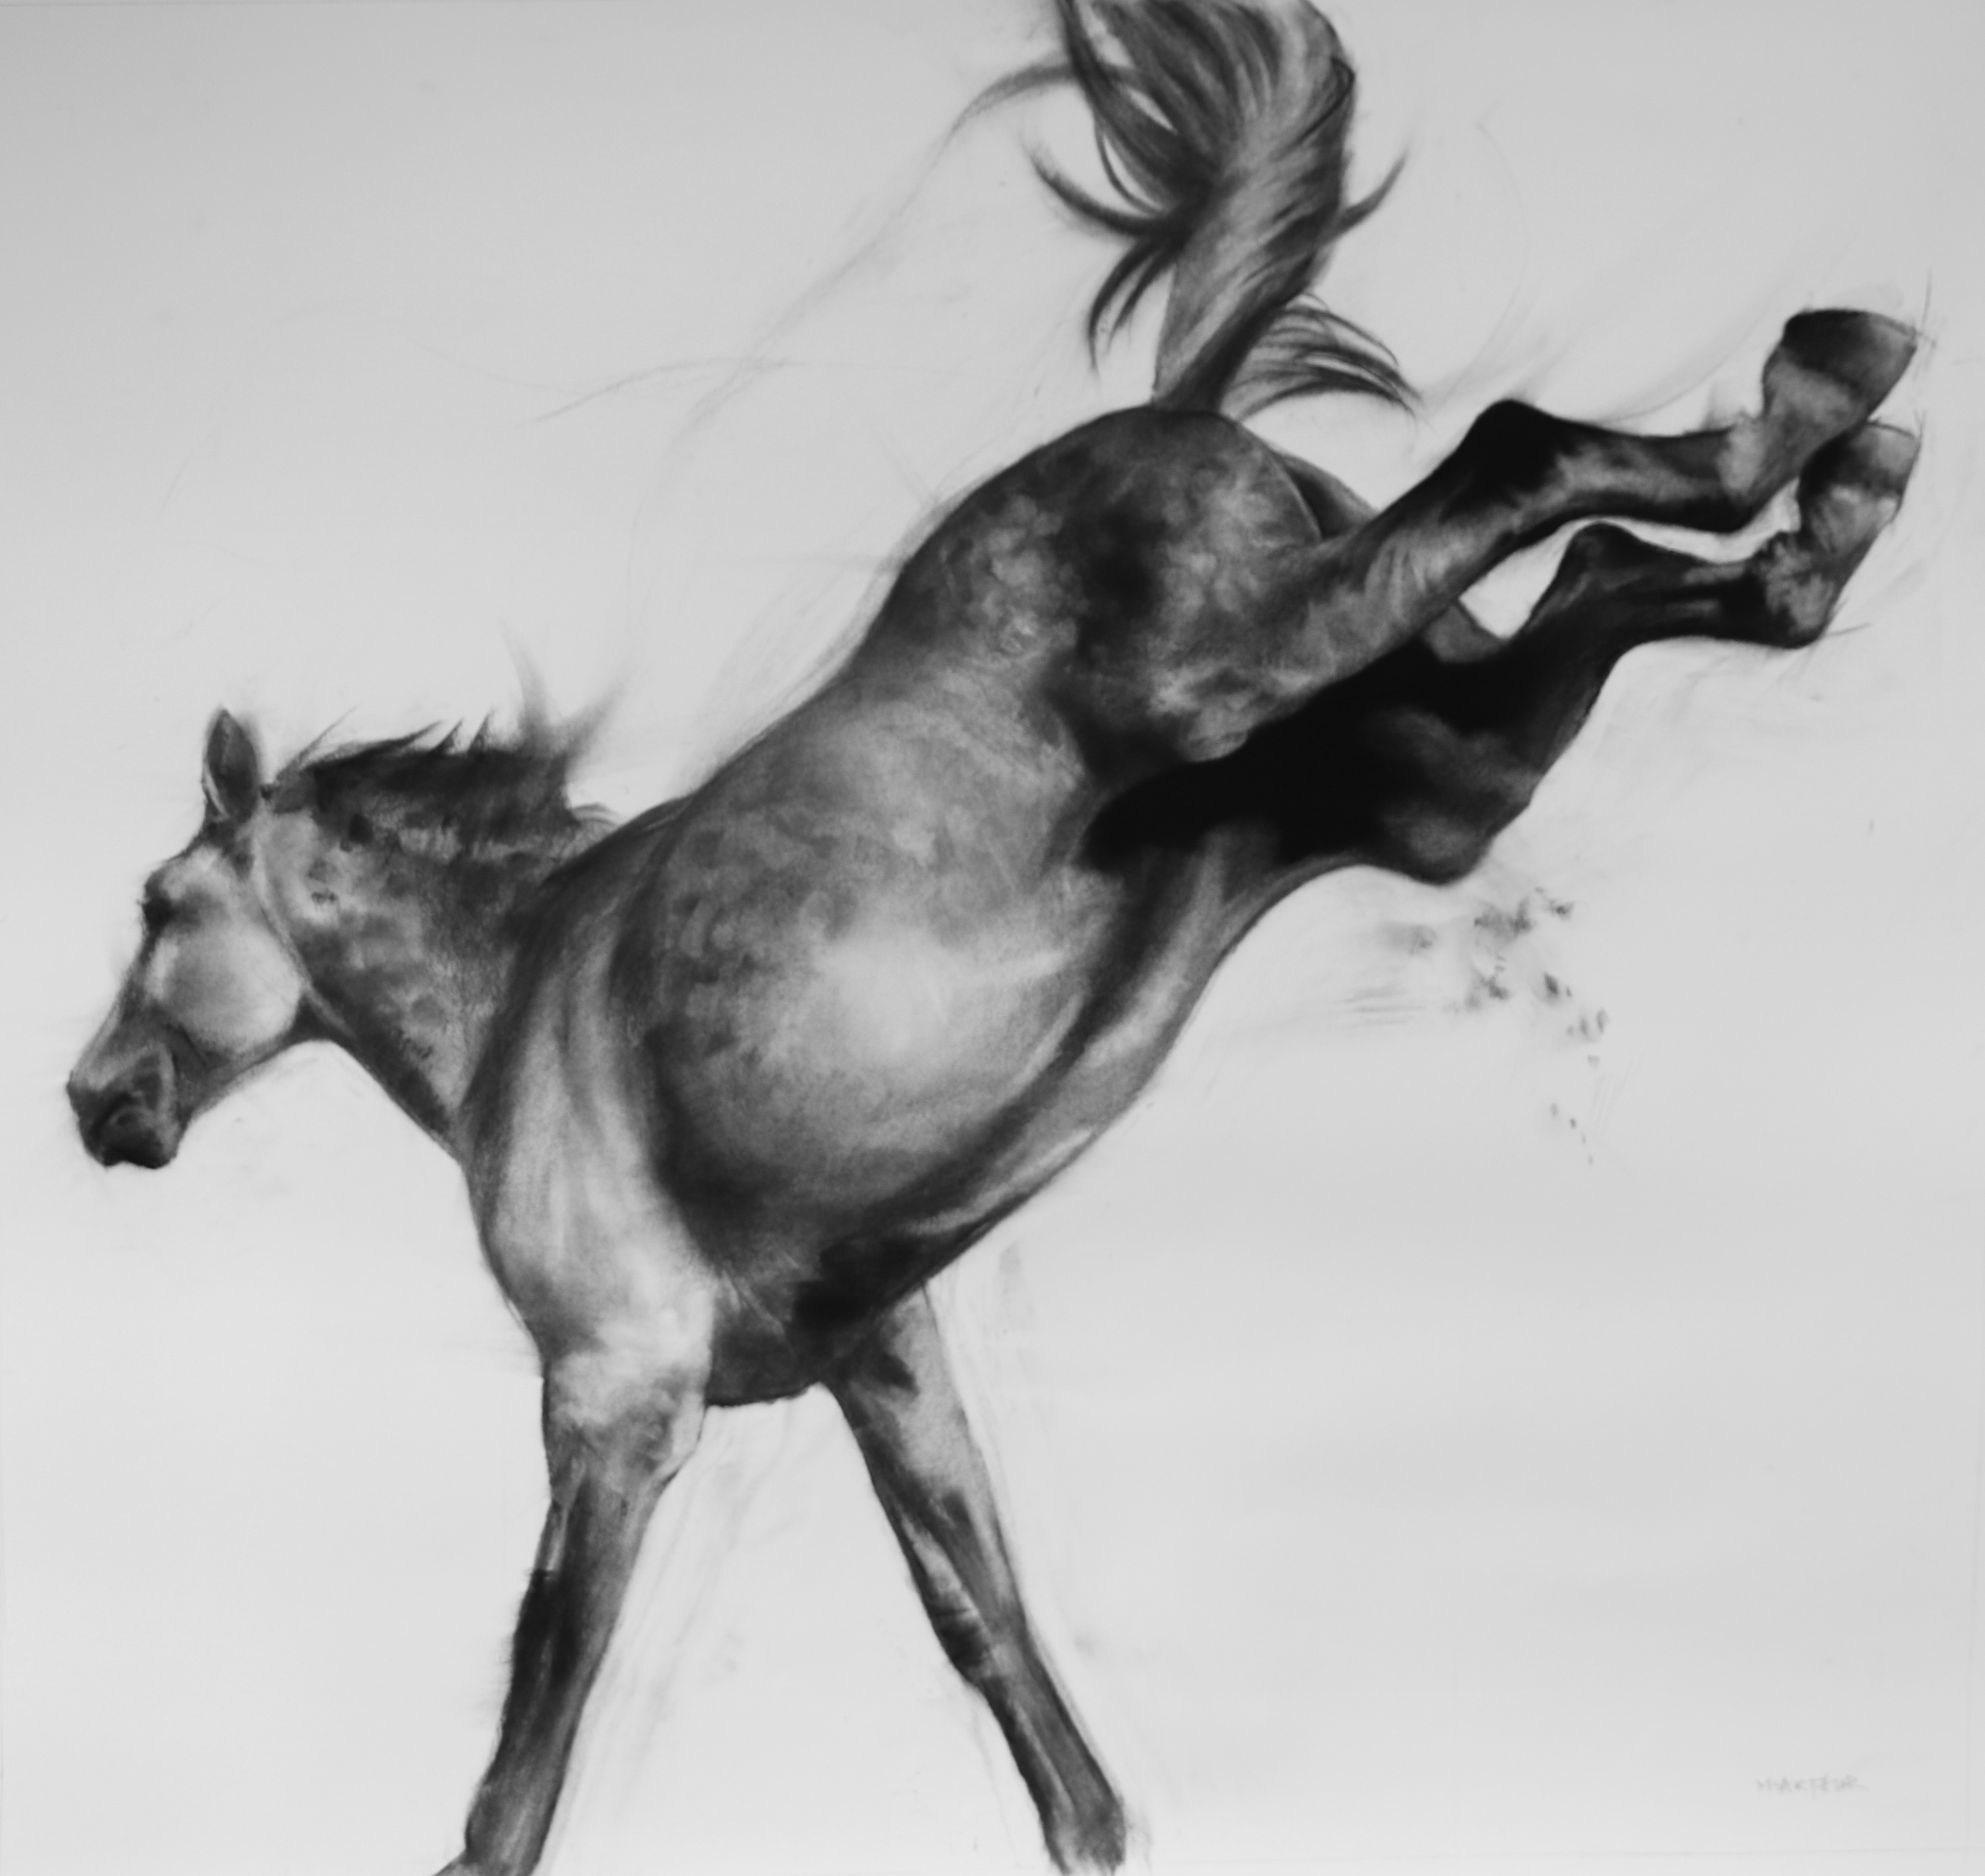 Patsy McArthur - Twister - Charcoal on paper